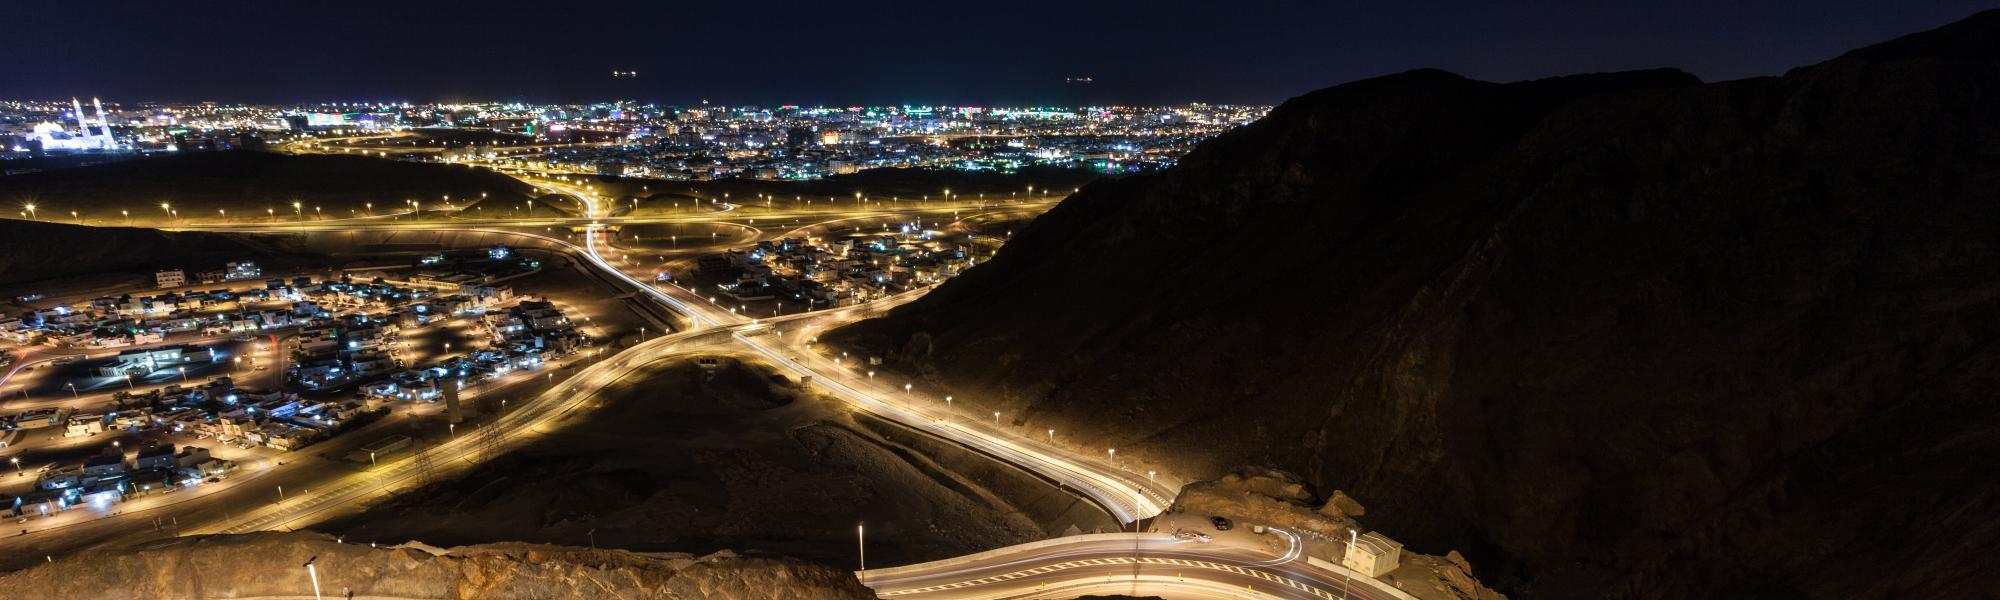 muscat at night